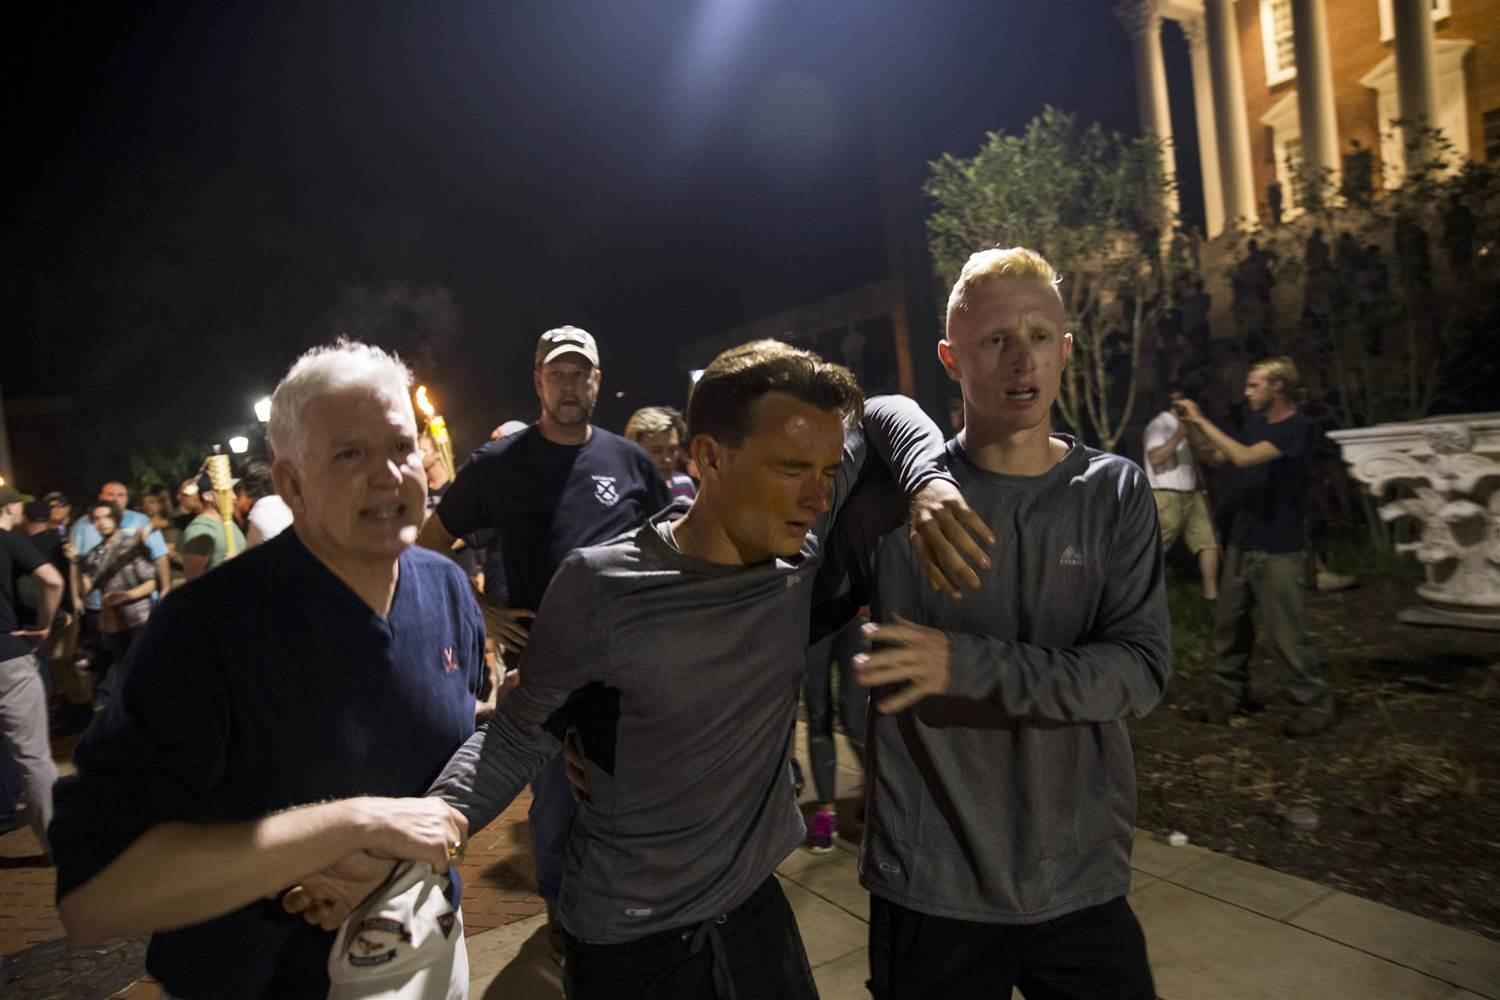 A man is helped after being hit in the face with pepper spray during a clash between counter protesters and Neo Nazis, Alt-Right, and White Supremacist groups after they marched through the University of Virginia Campus on Aug. 11, 2017.